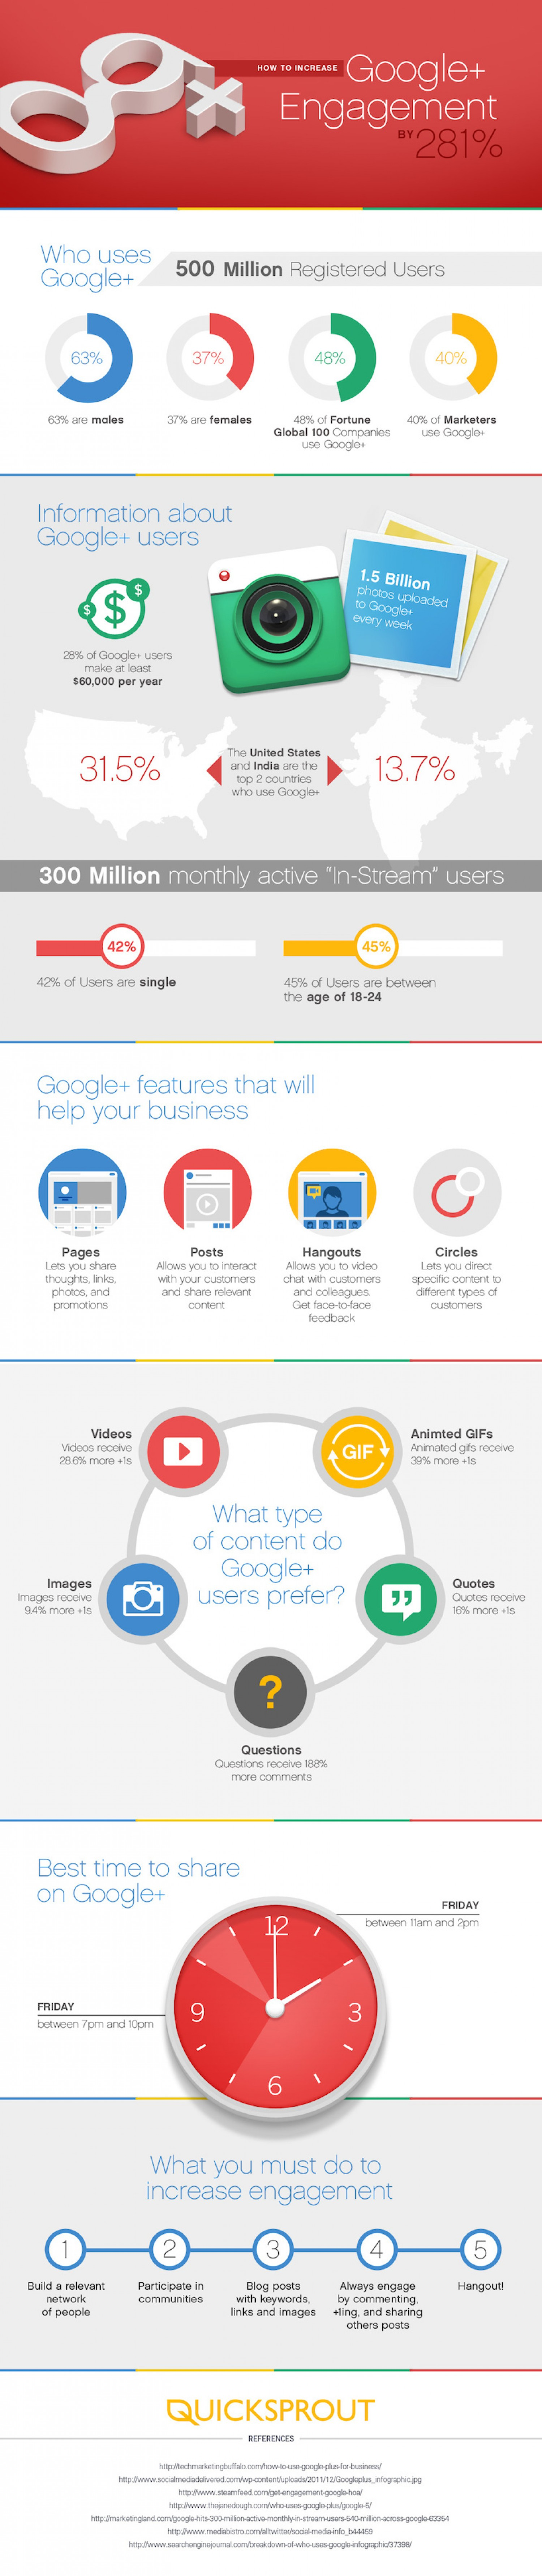 04 how-to-increase-your-google-engagement-by-281_52fef3aa4f79f_w1500